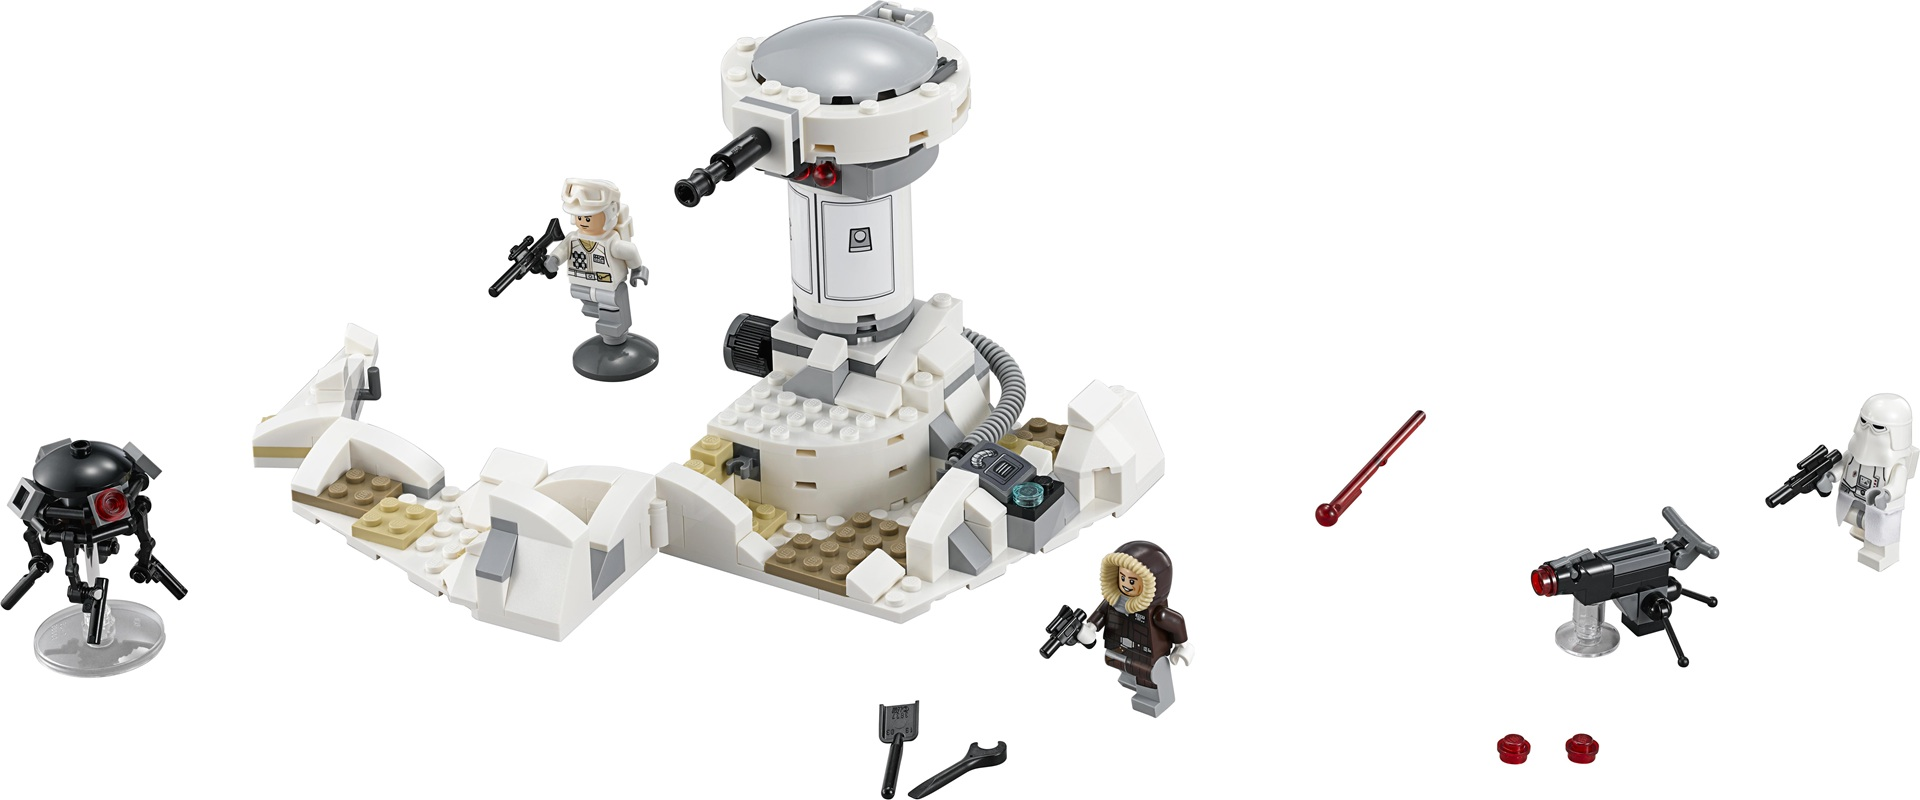 Two New Star Wars Lego Sets Coming In